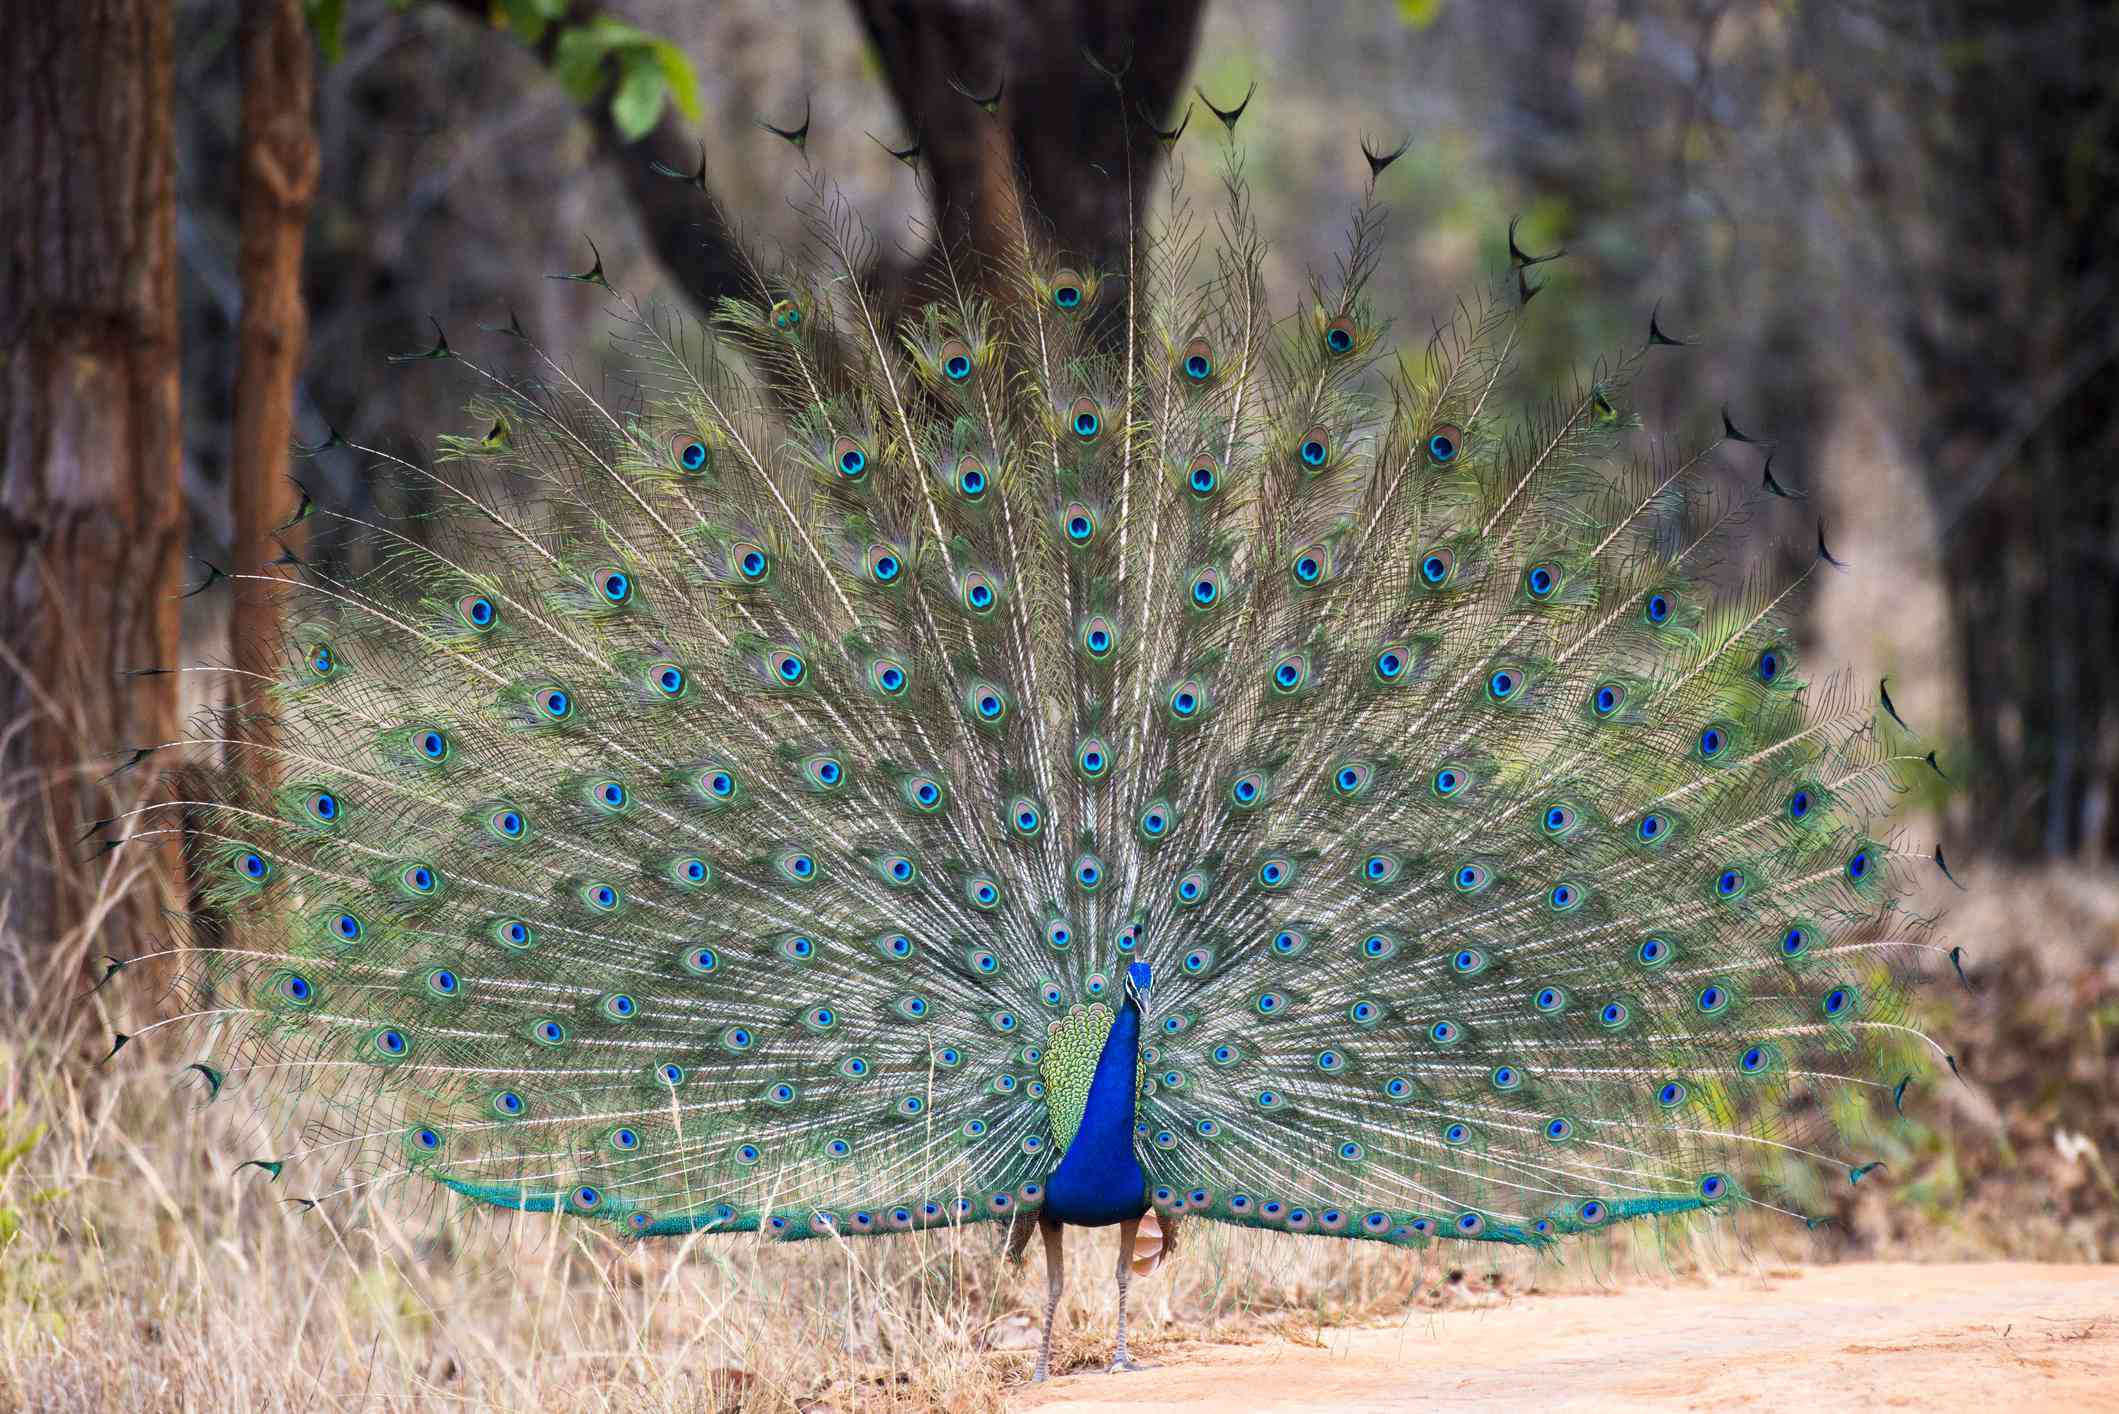 Male Indian peafowl in full display of brilliant feathers